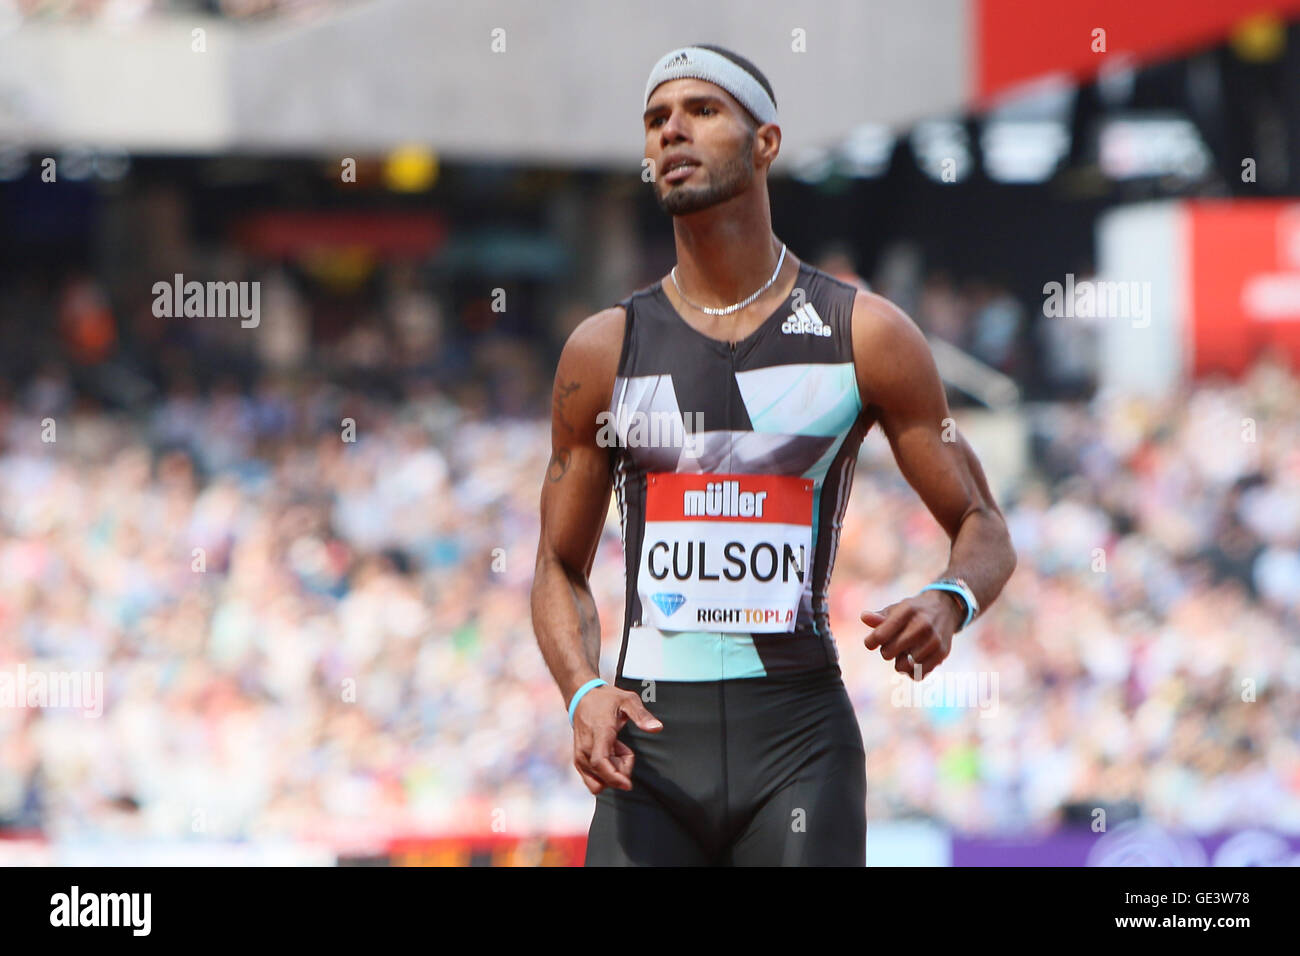 London, UK. 23rd July 2016. London, UK. IAAF Diamond Leauge Anniversary Games. Javier Culson takes second place - Stock Image